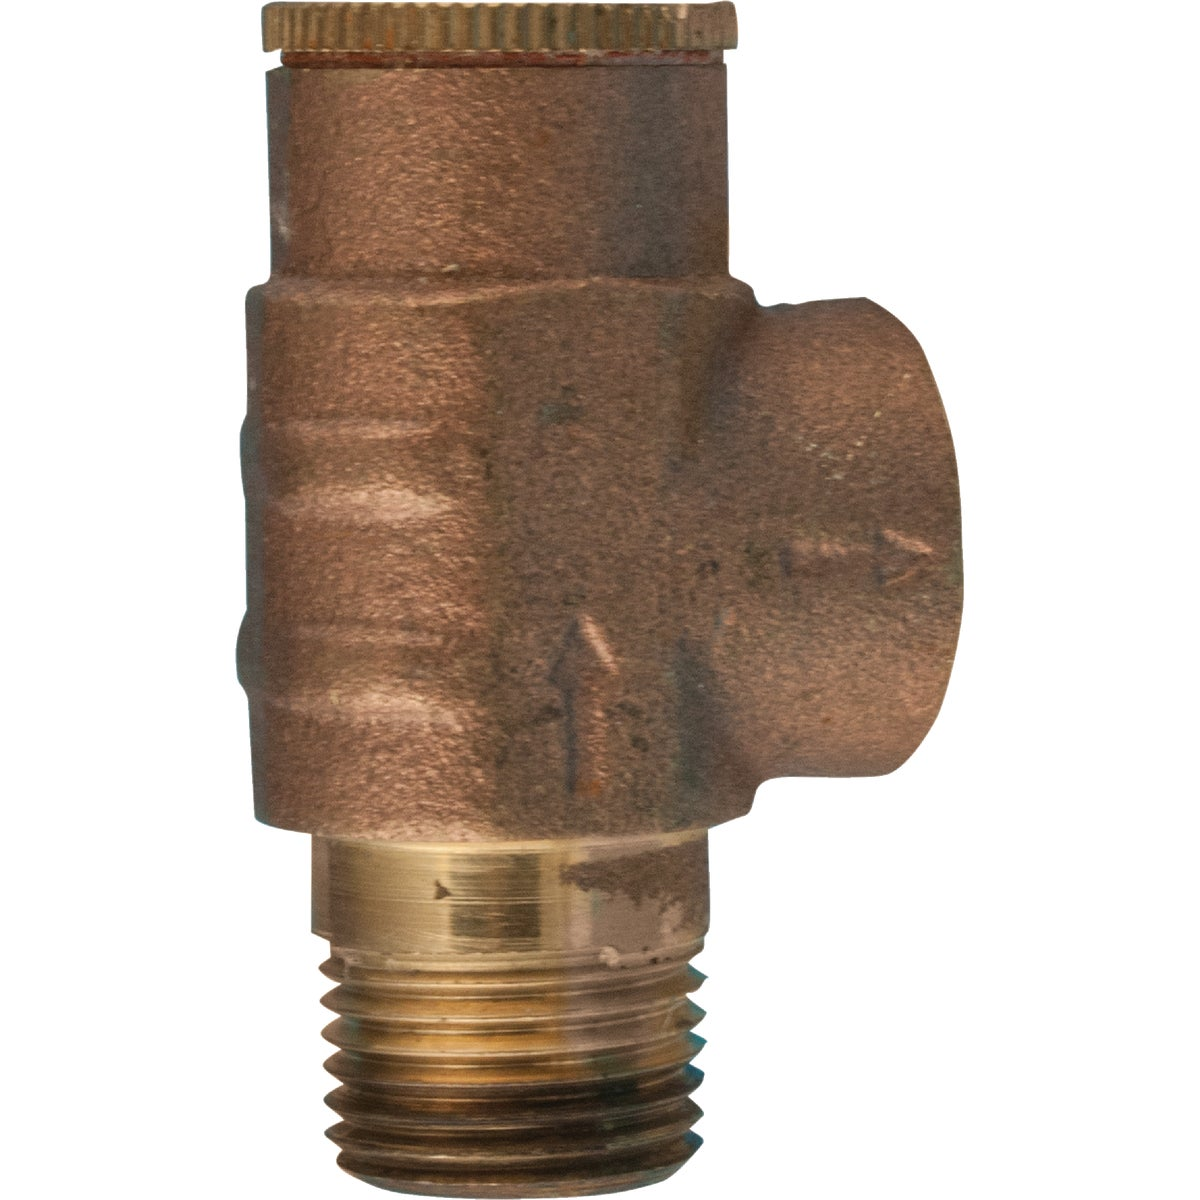 1/2 PRESSUR RELIEF VALVE - KH92 by Star Water Systems